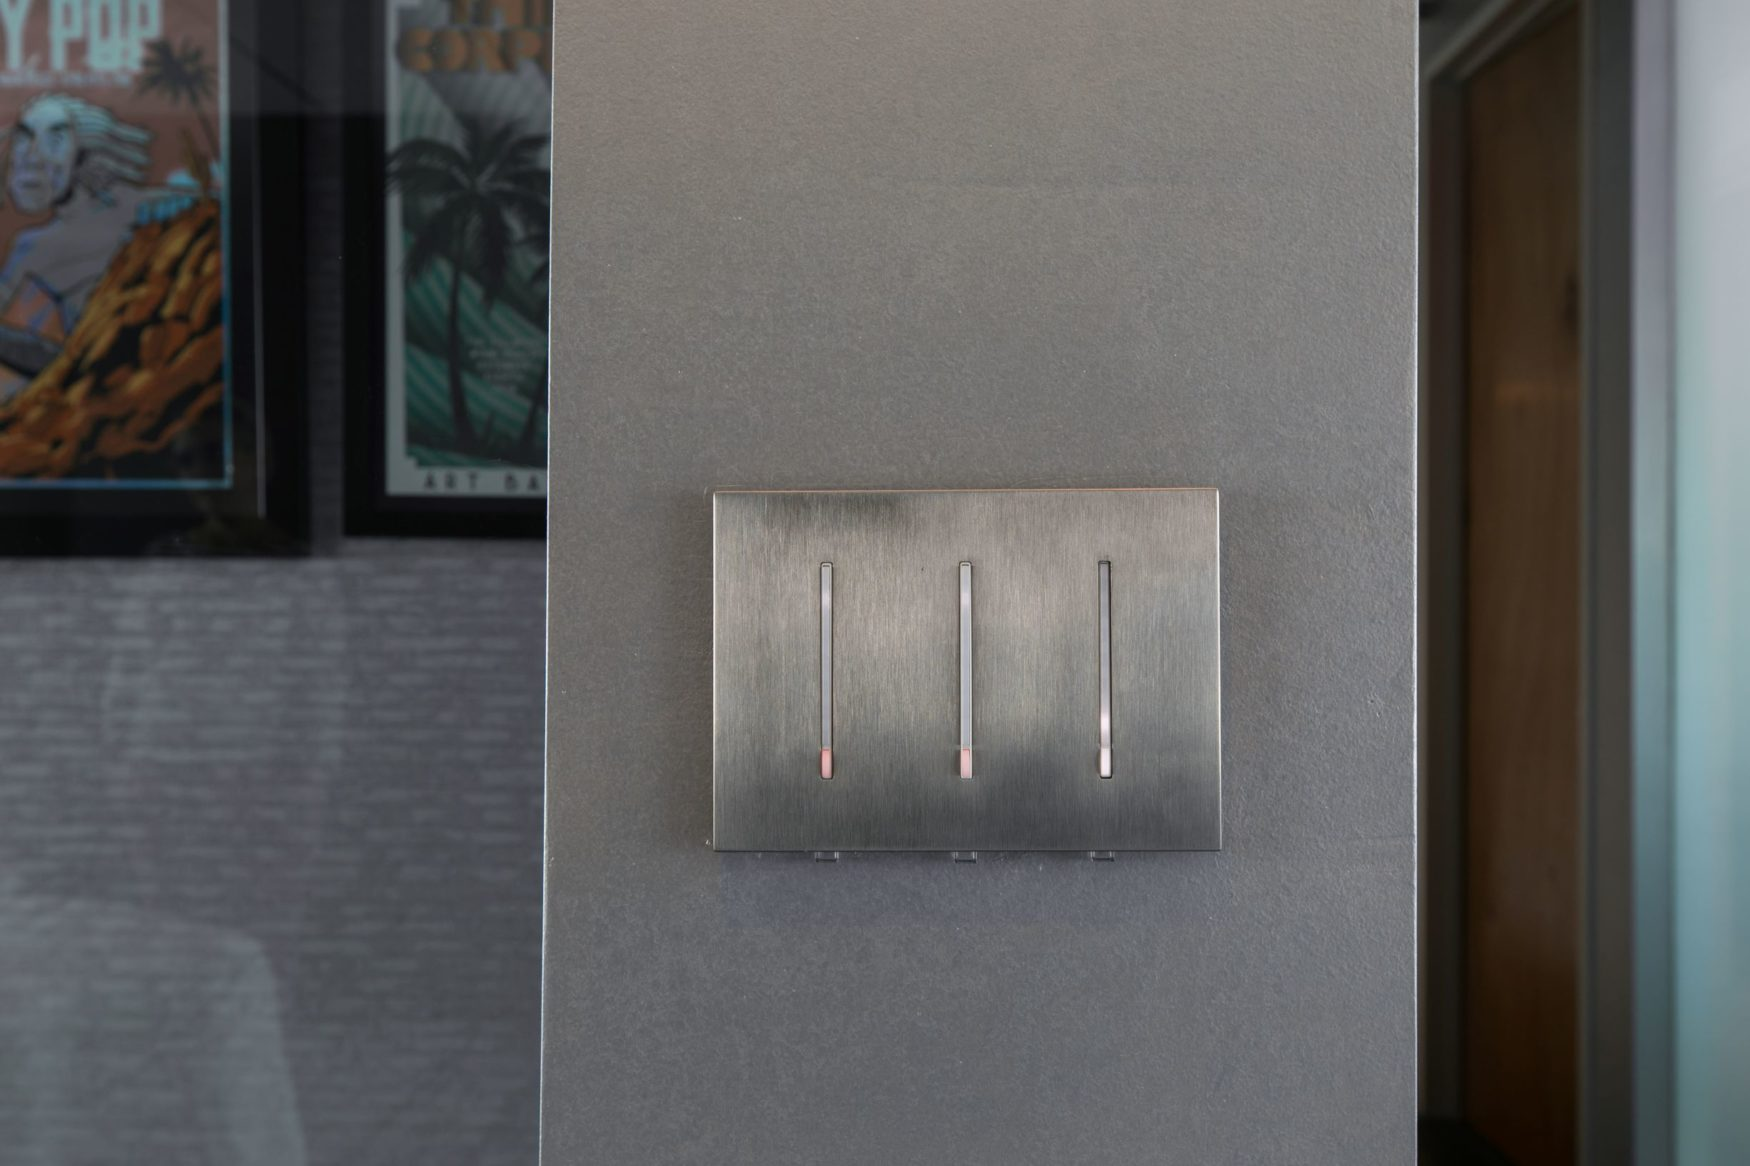 Lutron Grafik T Dimmer in Metal